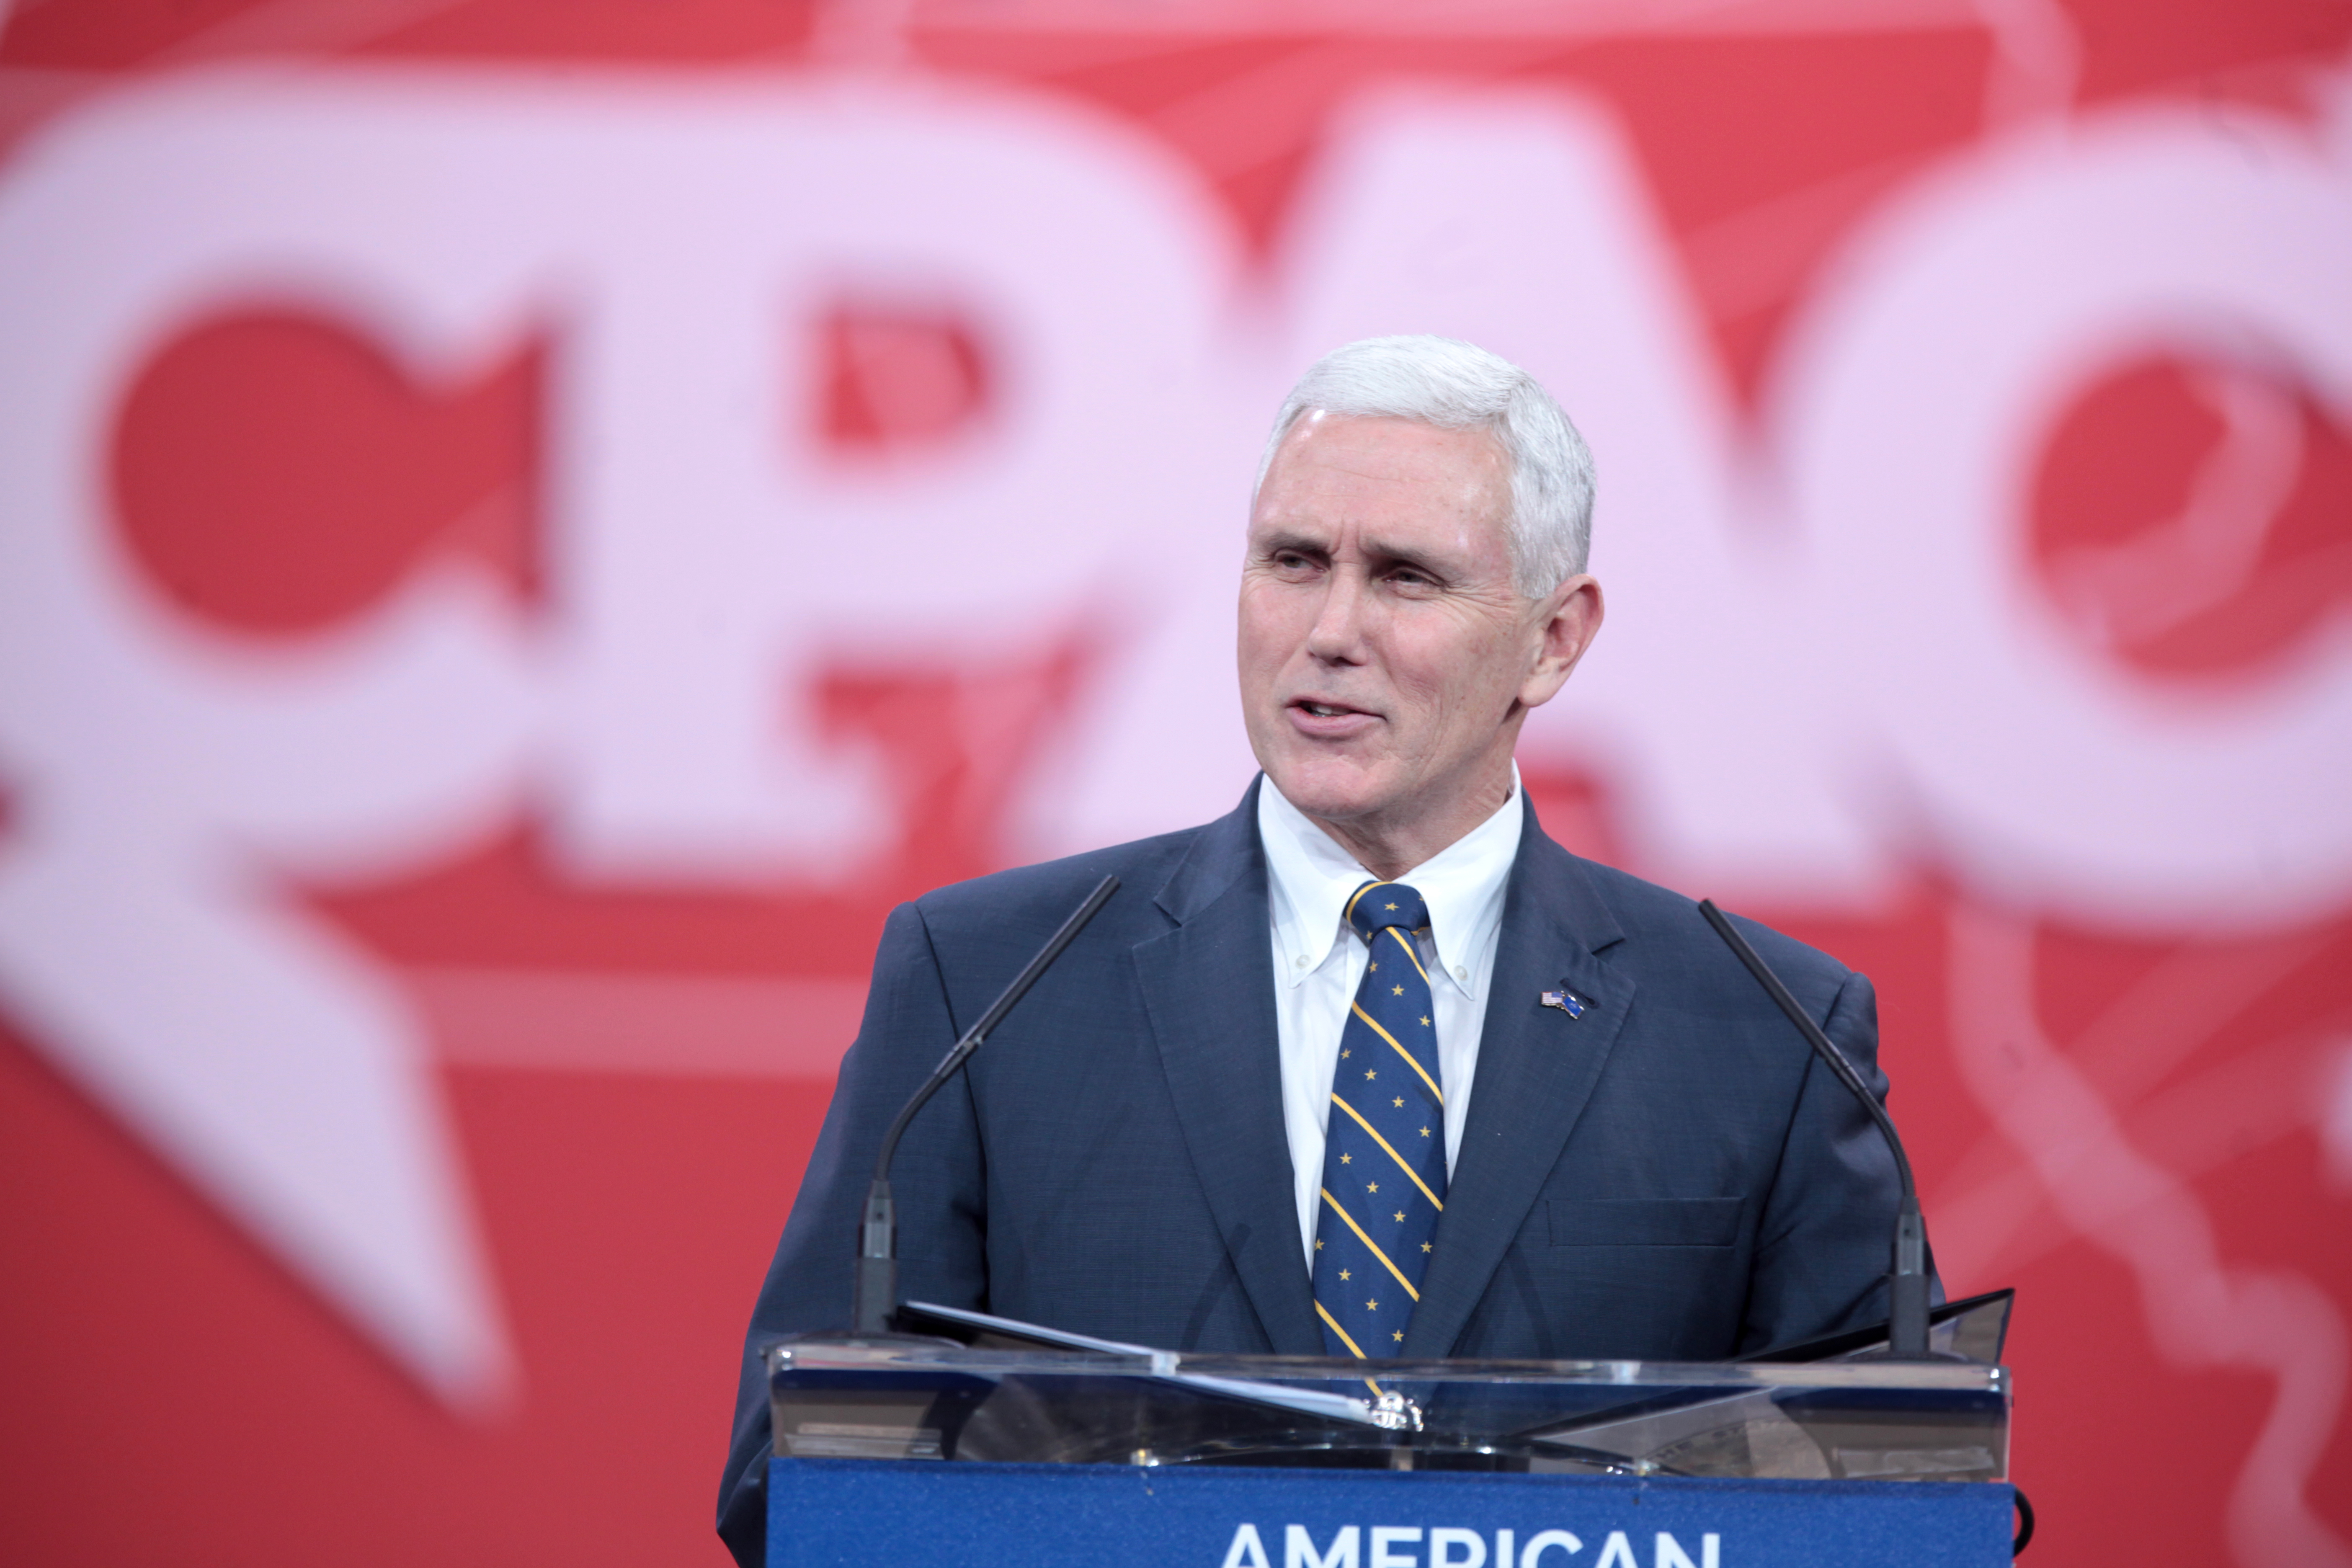 'America stands with Israel, now and always': Mike Pence